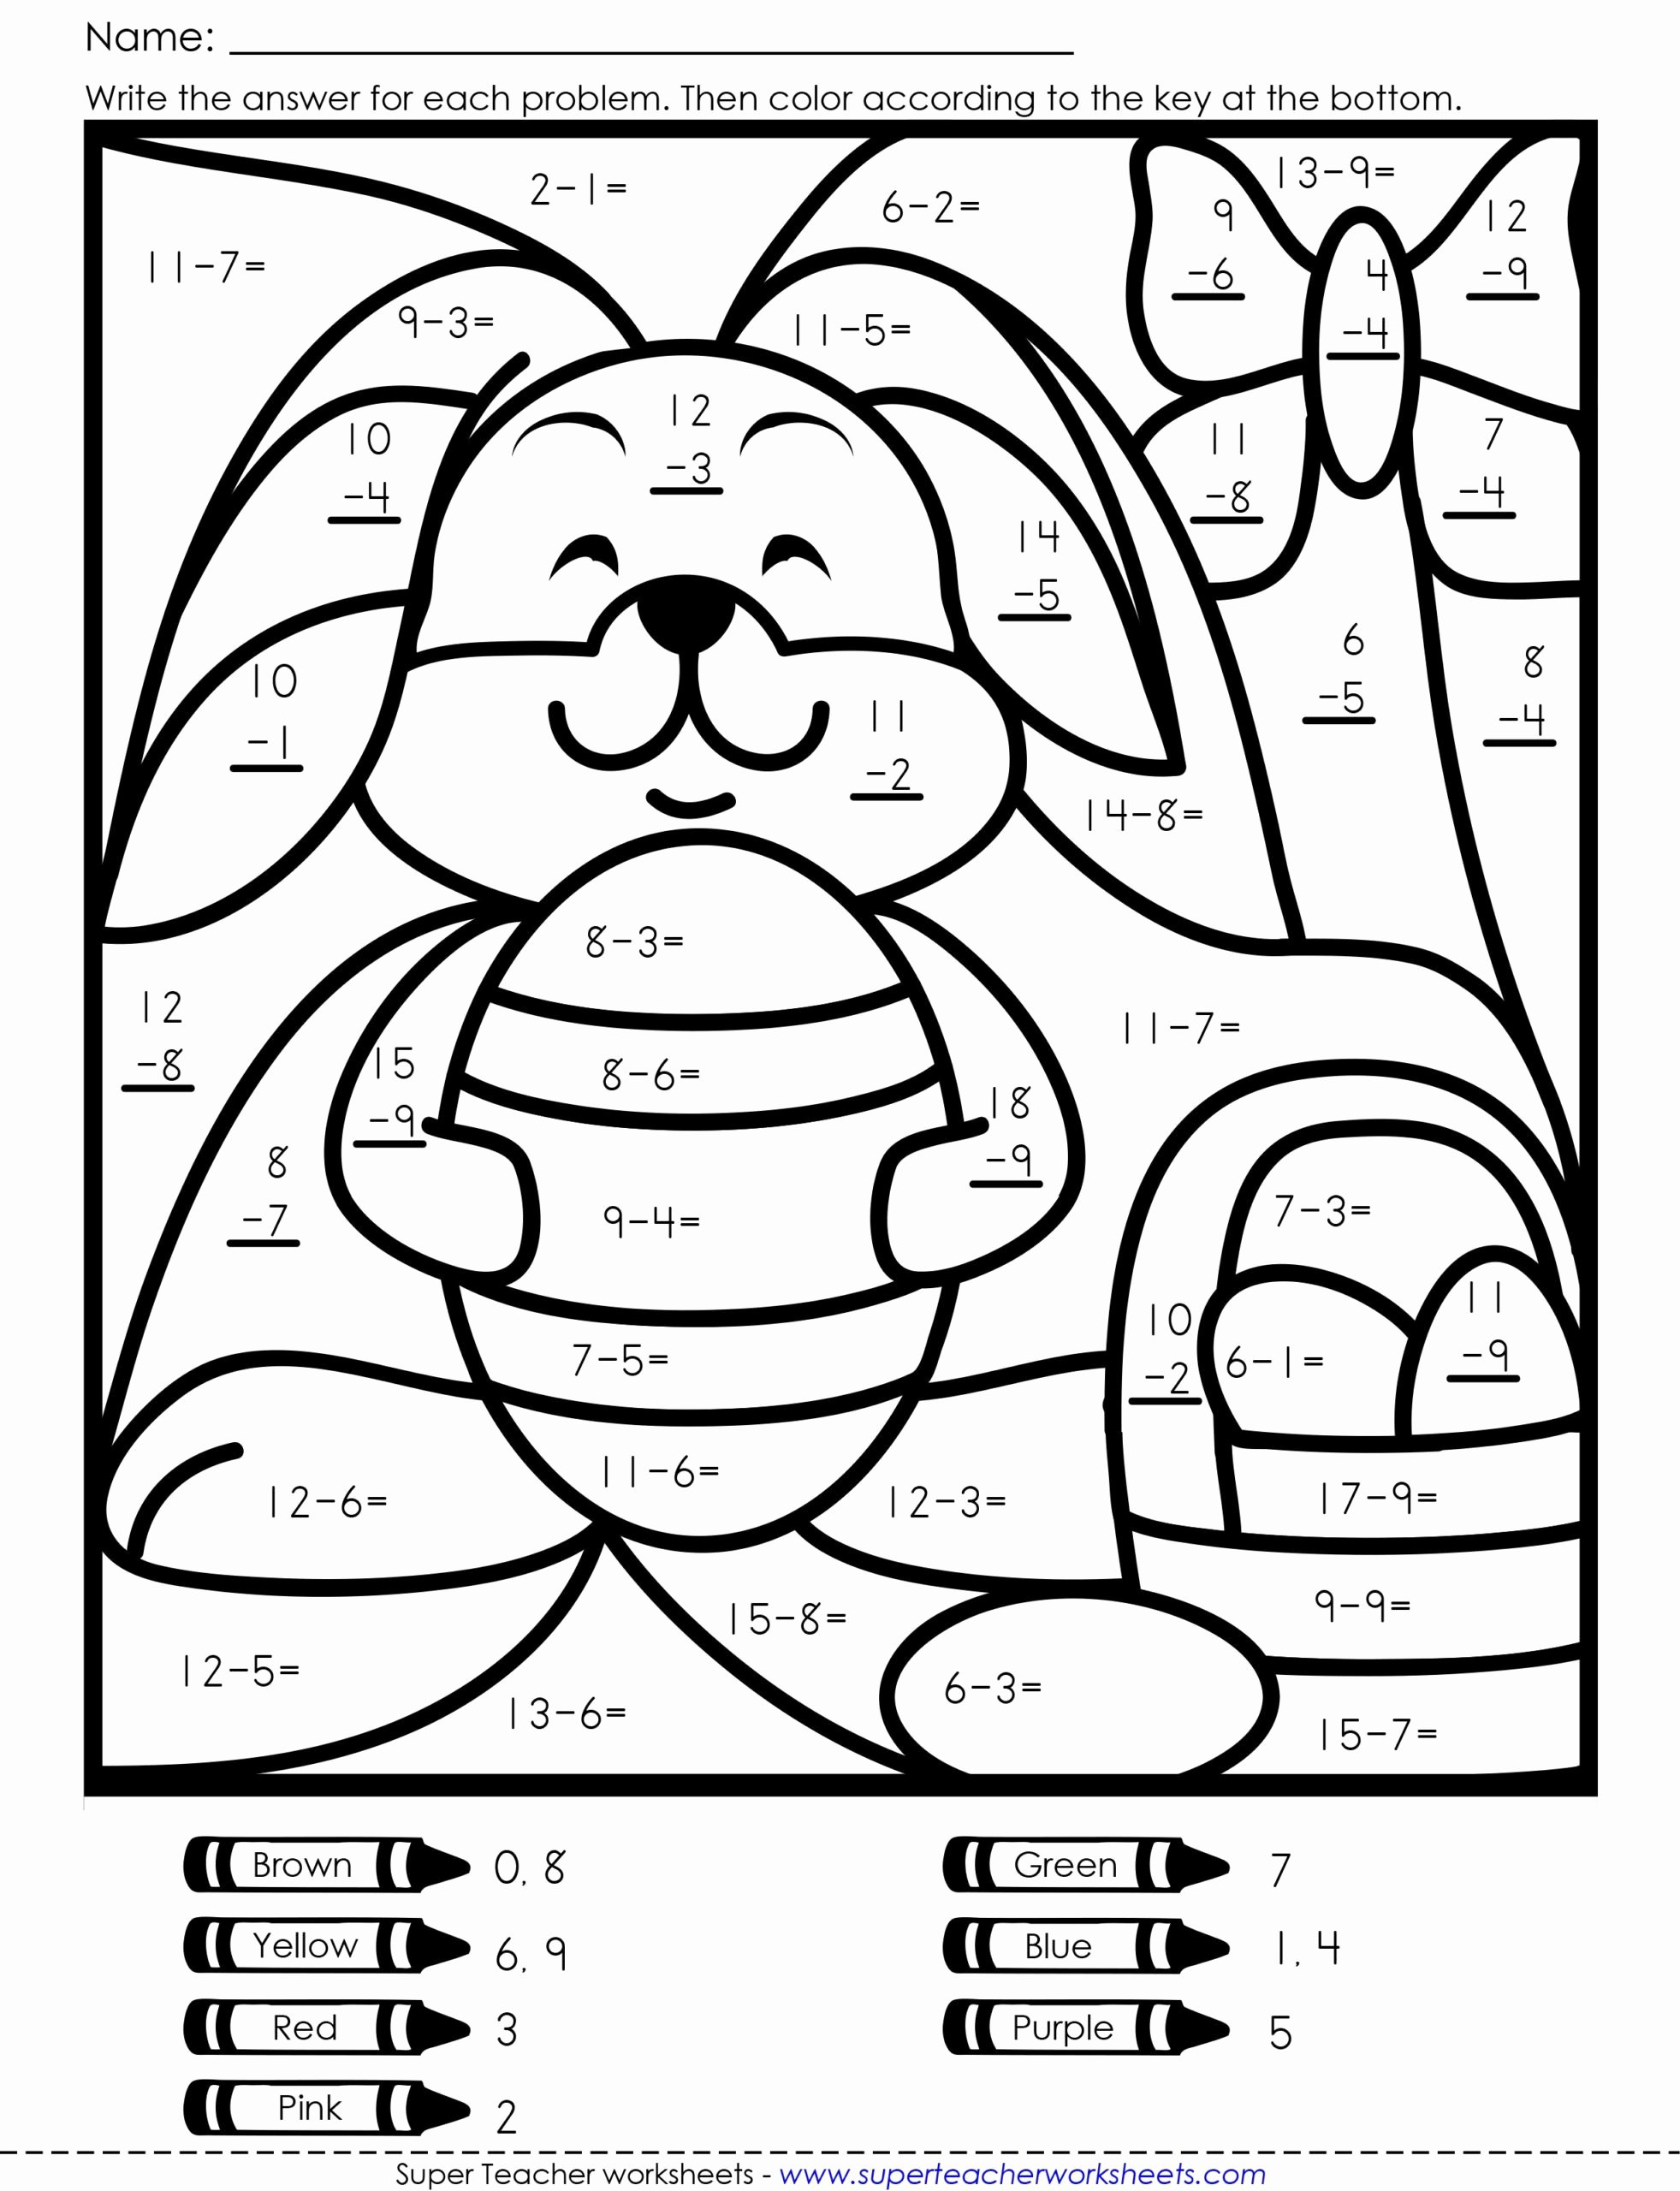 Easter Worksheets for Preschoolers Fresh Worksheets Coloring Book Easter Math Free Worksheets 5th